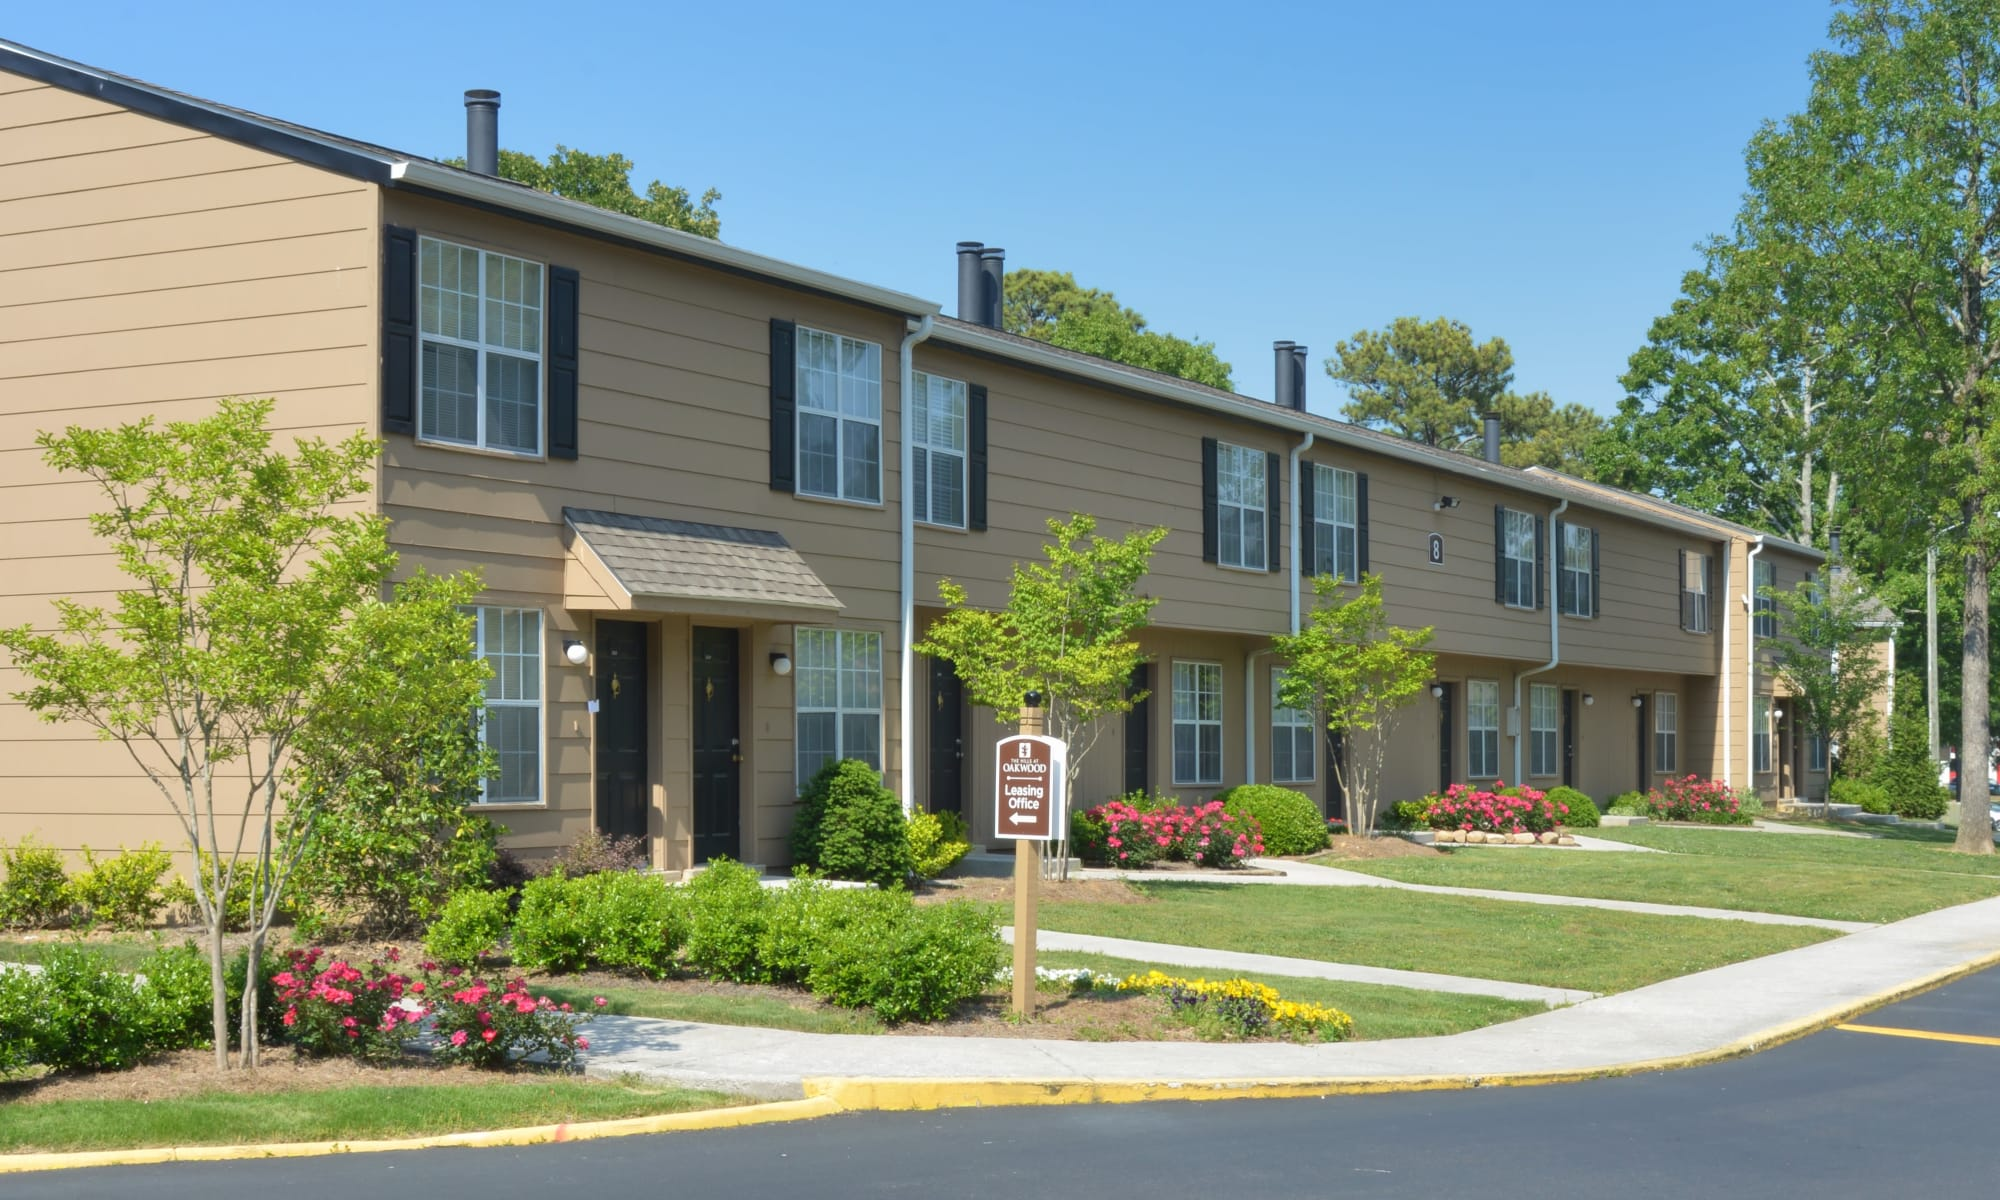 Apartments in The Hills at Oakwood Apartment Homes in Chattanooga, Tennessee